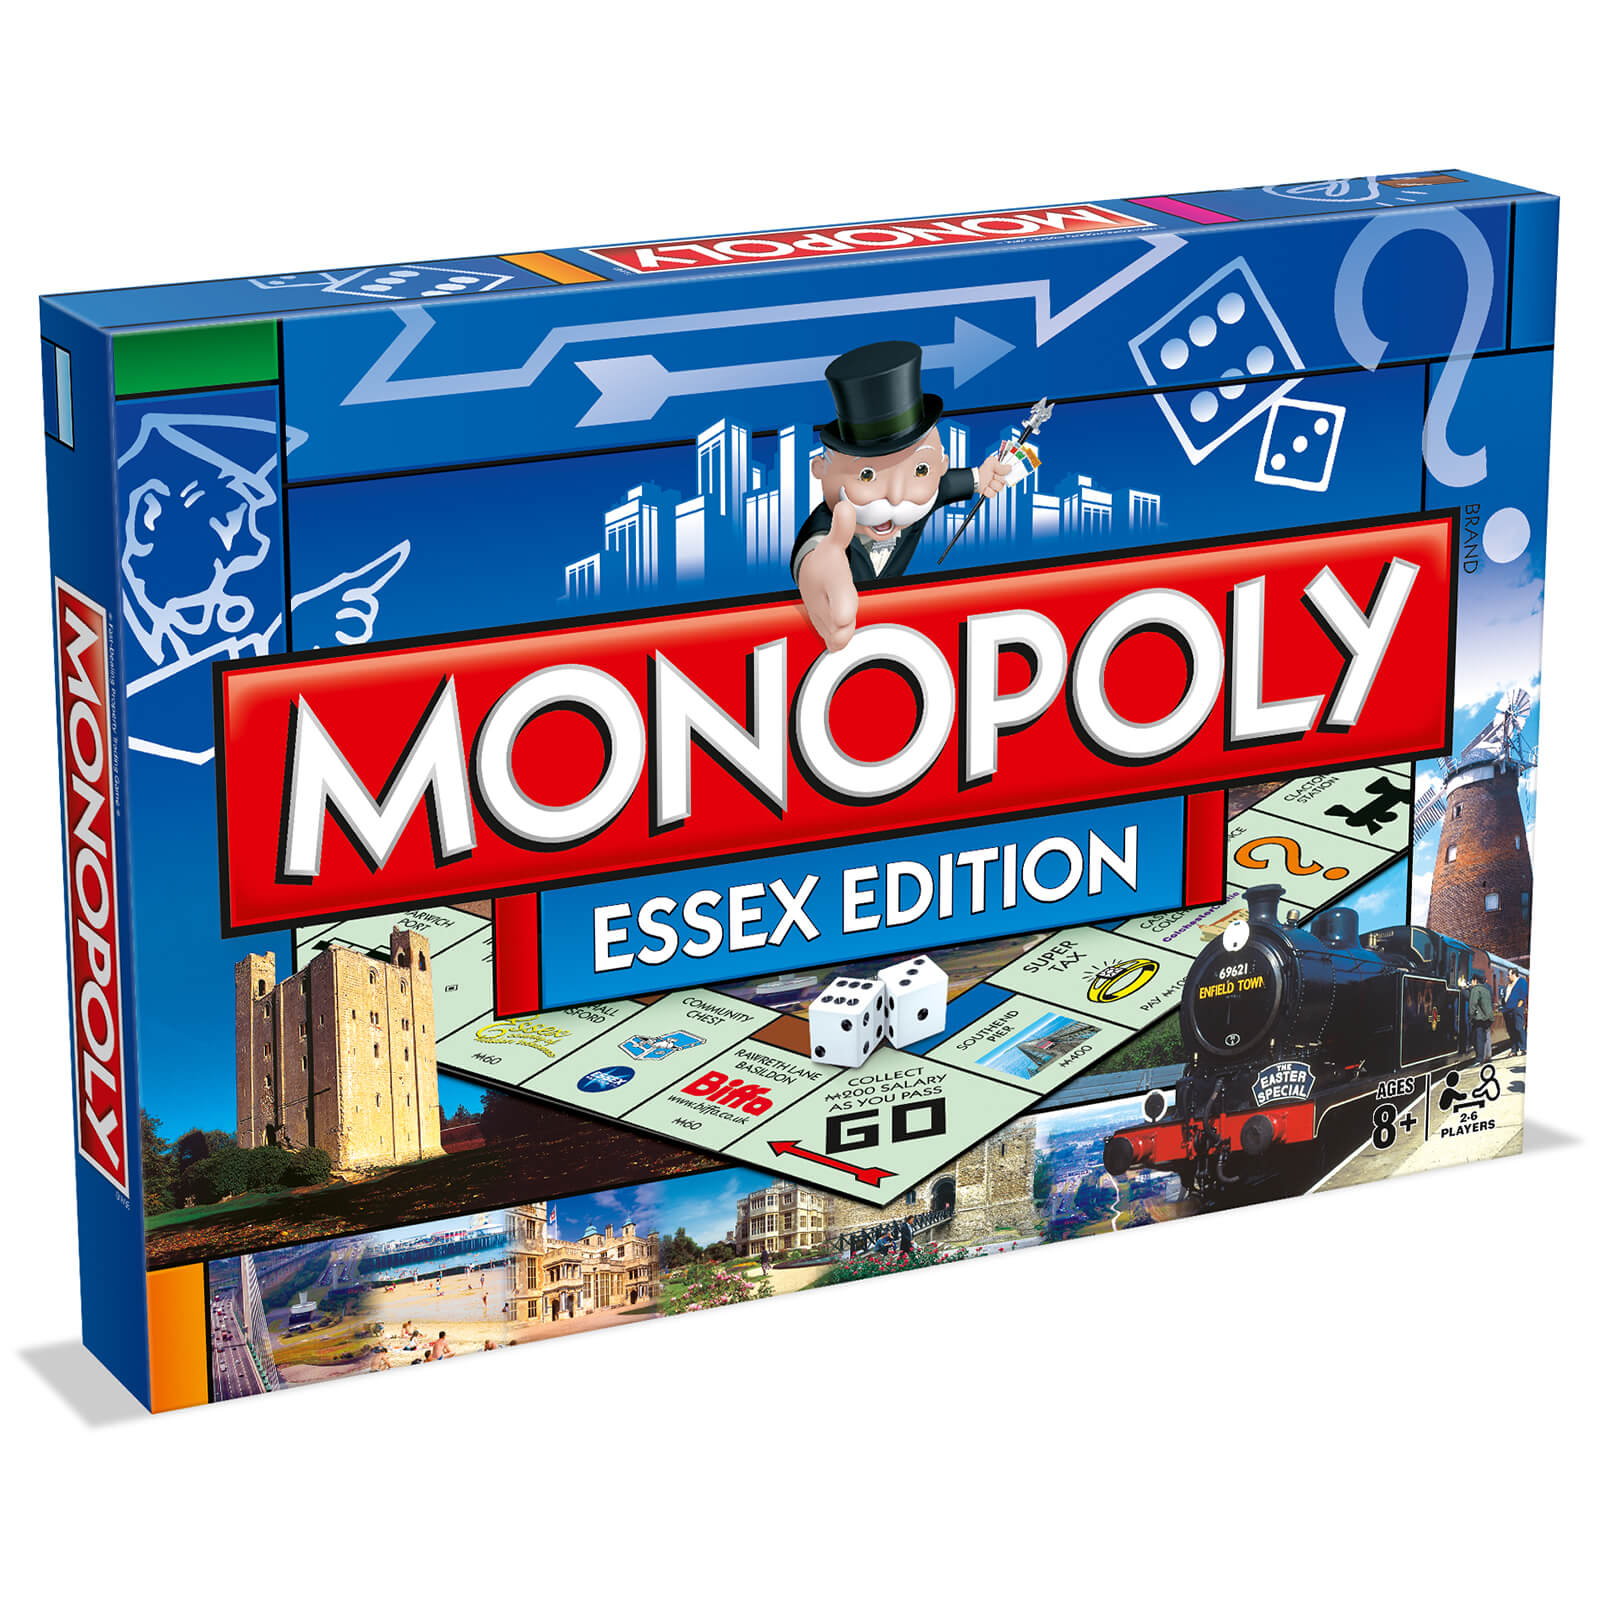 Image of Monopoly Board Game - Essex Edition